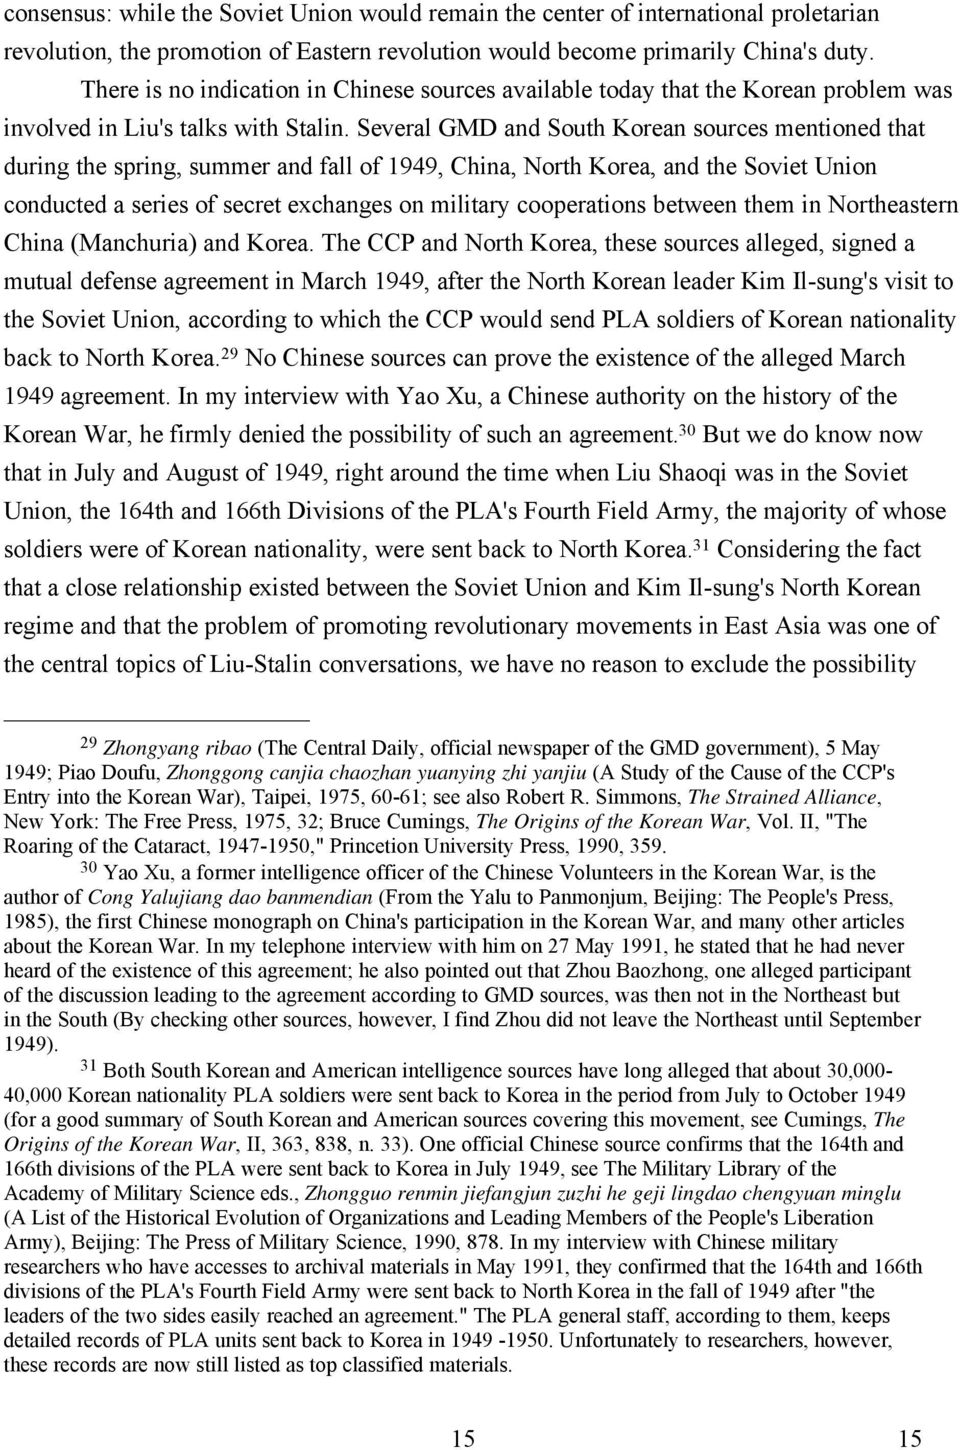 Several GMD and South Korean sources mentioned that during the spring, summer and fall of 1949, China, North Korea, and the Soviet Union conducted a series of secret exchanges on military